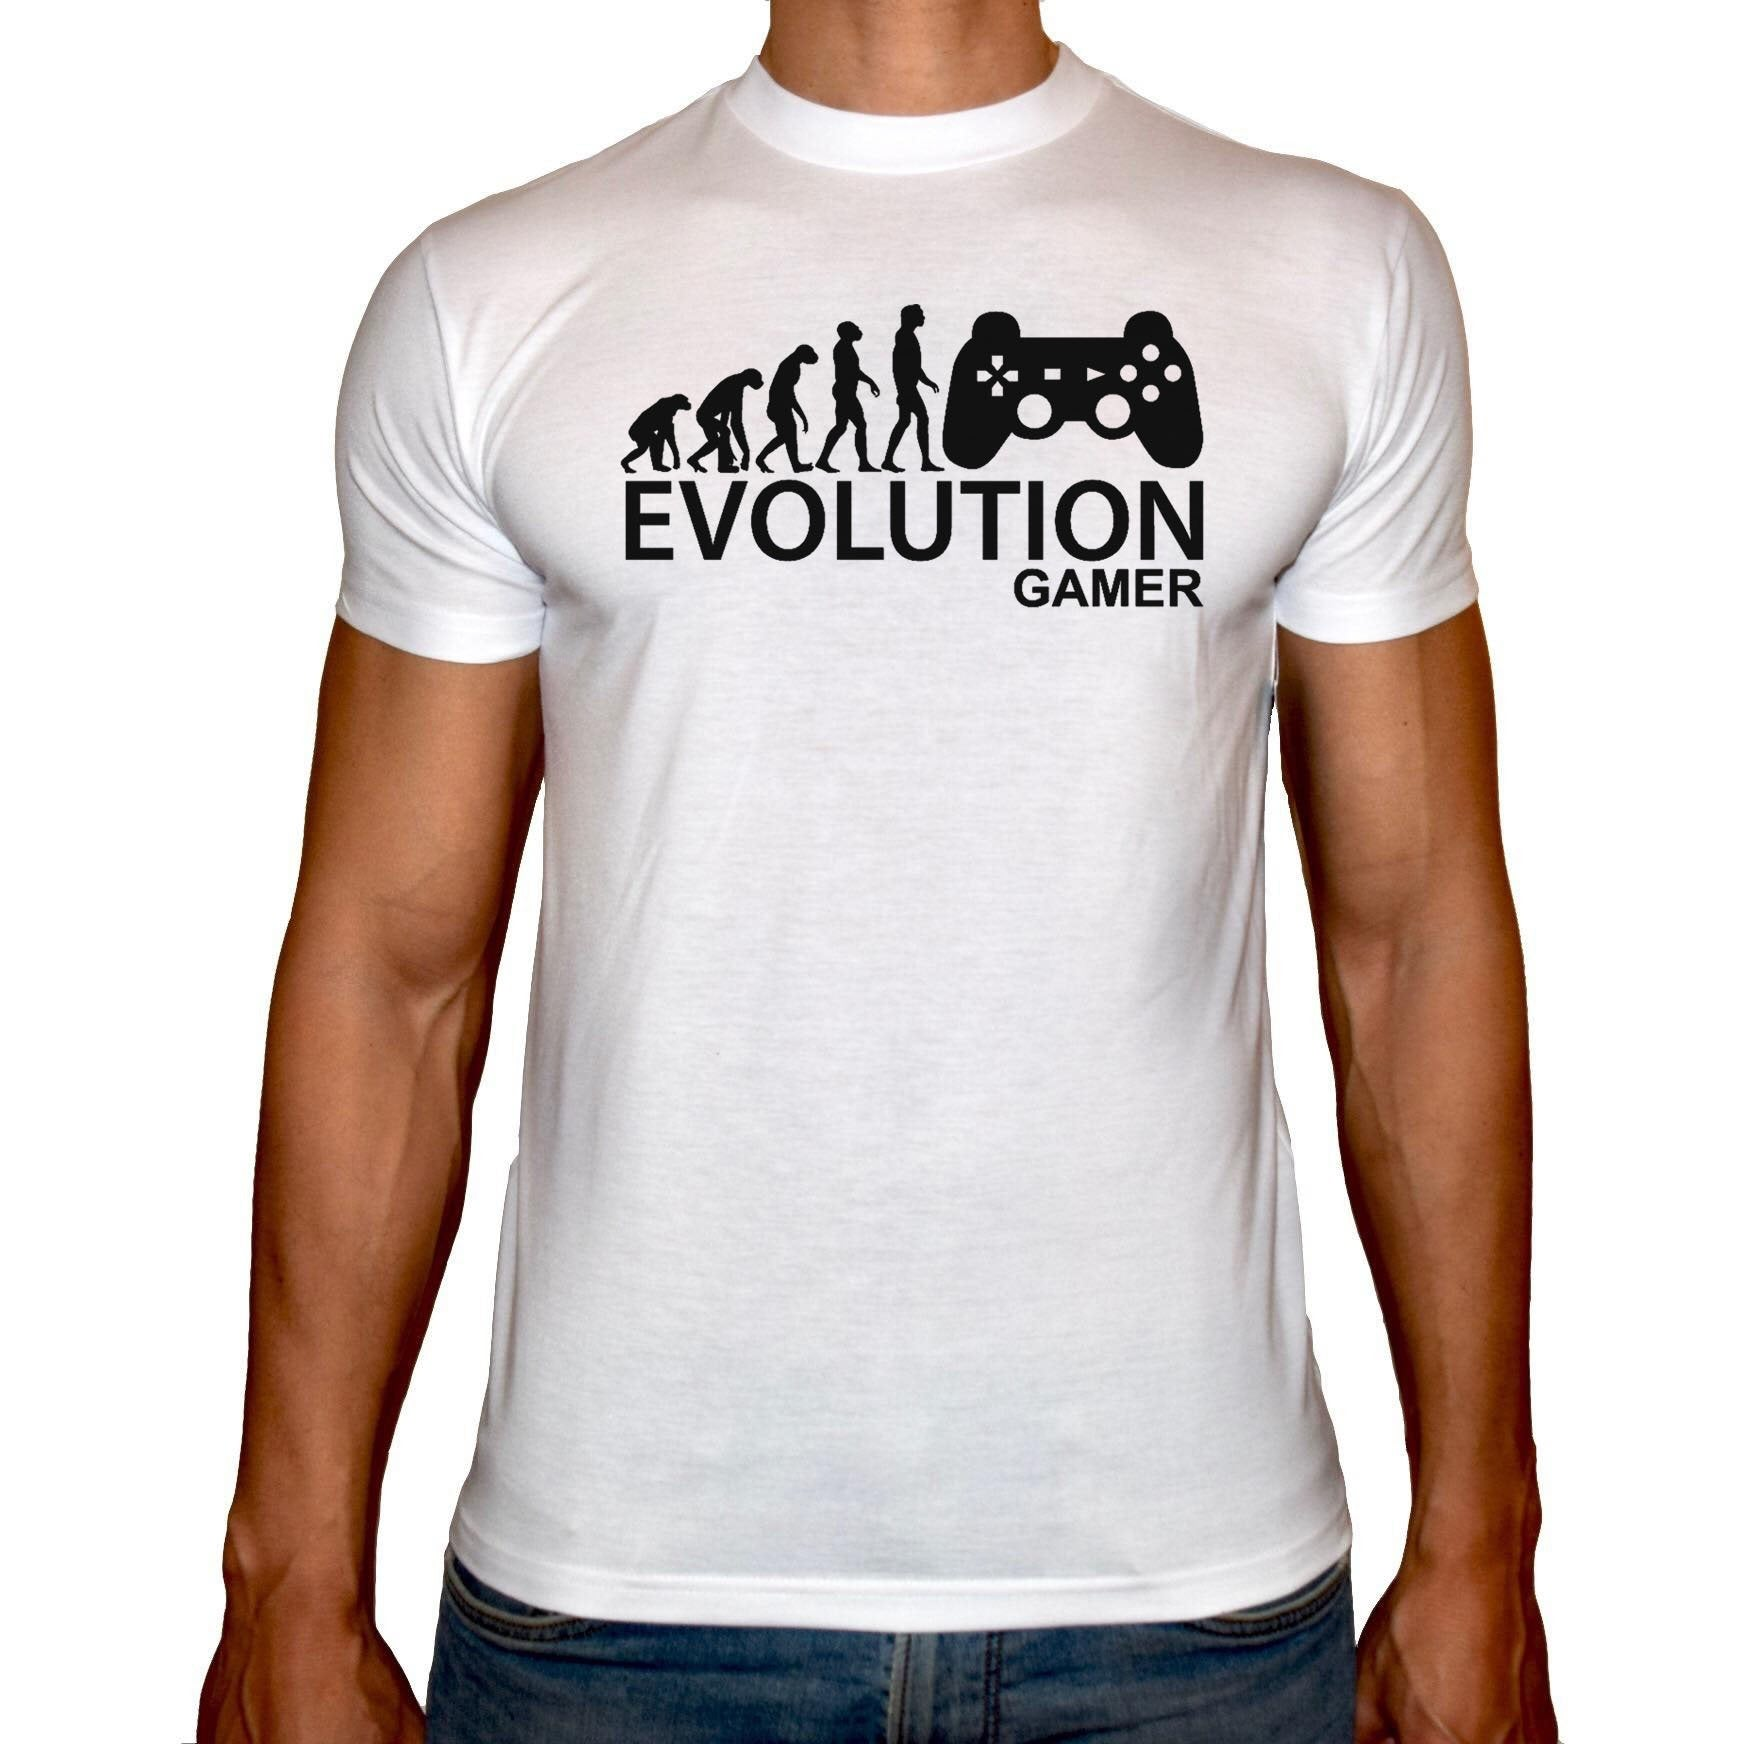 Phoenix WHITE Round Neck Printed T-Shirt Men (Playstation)